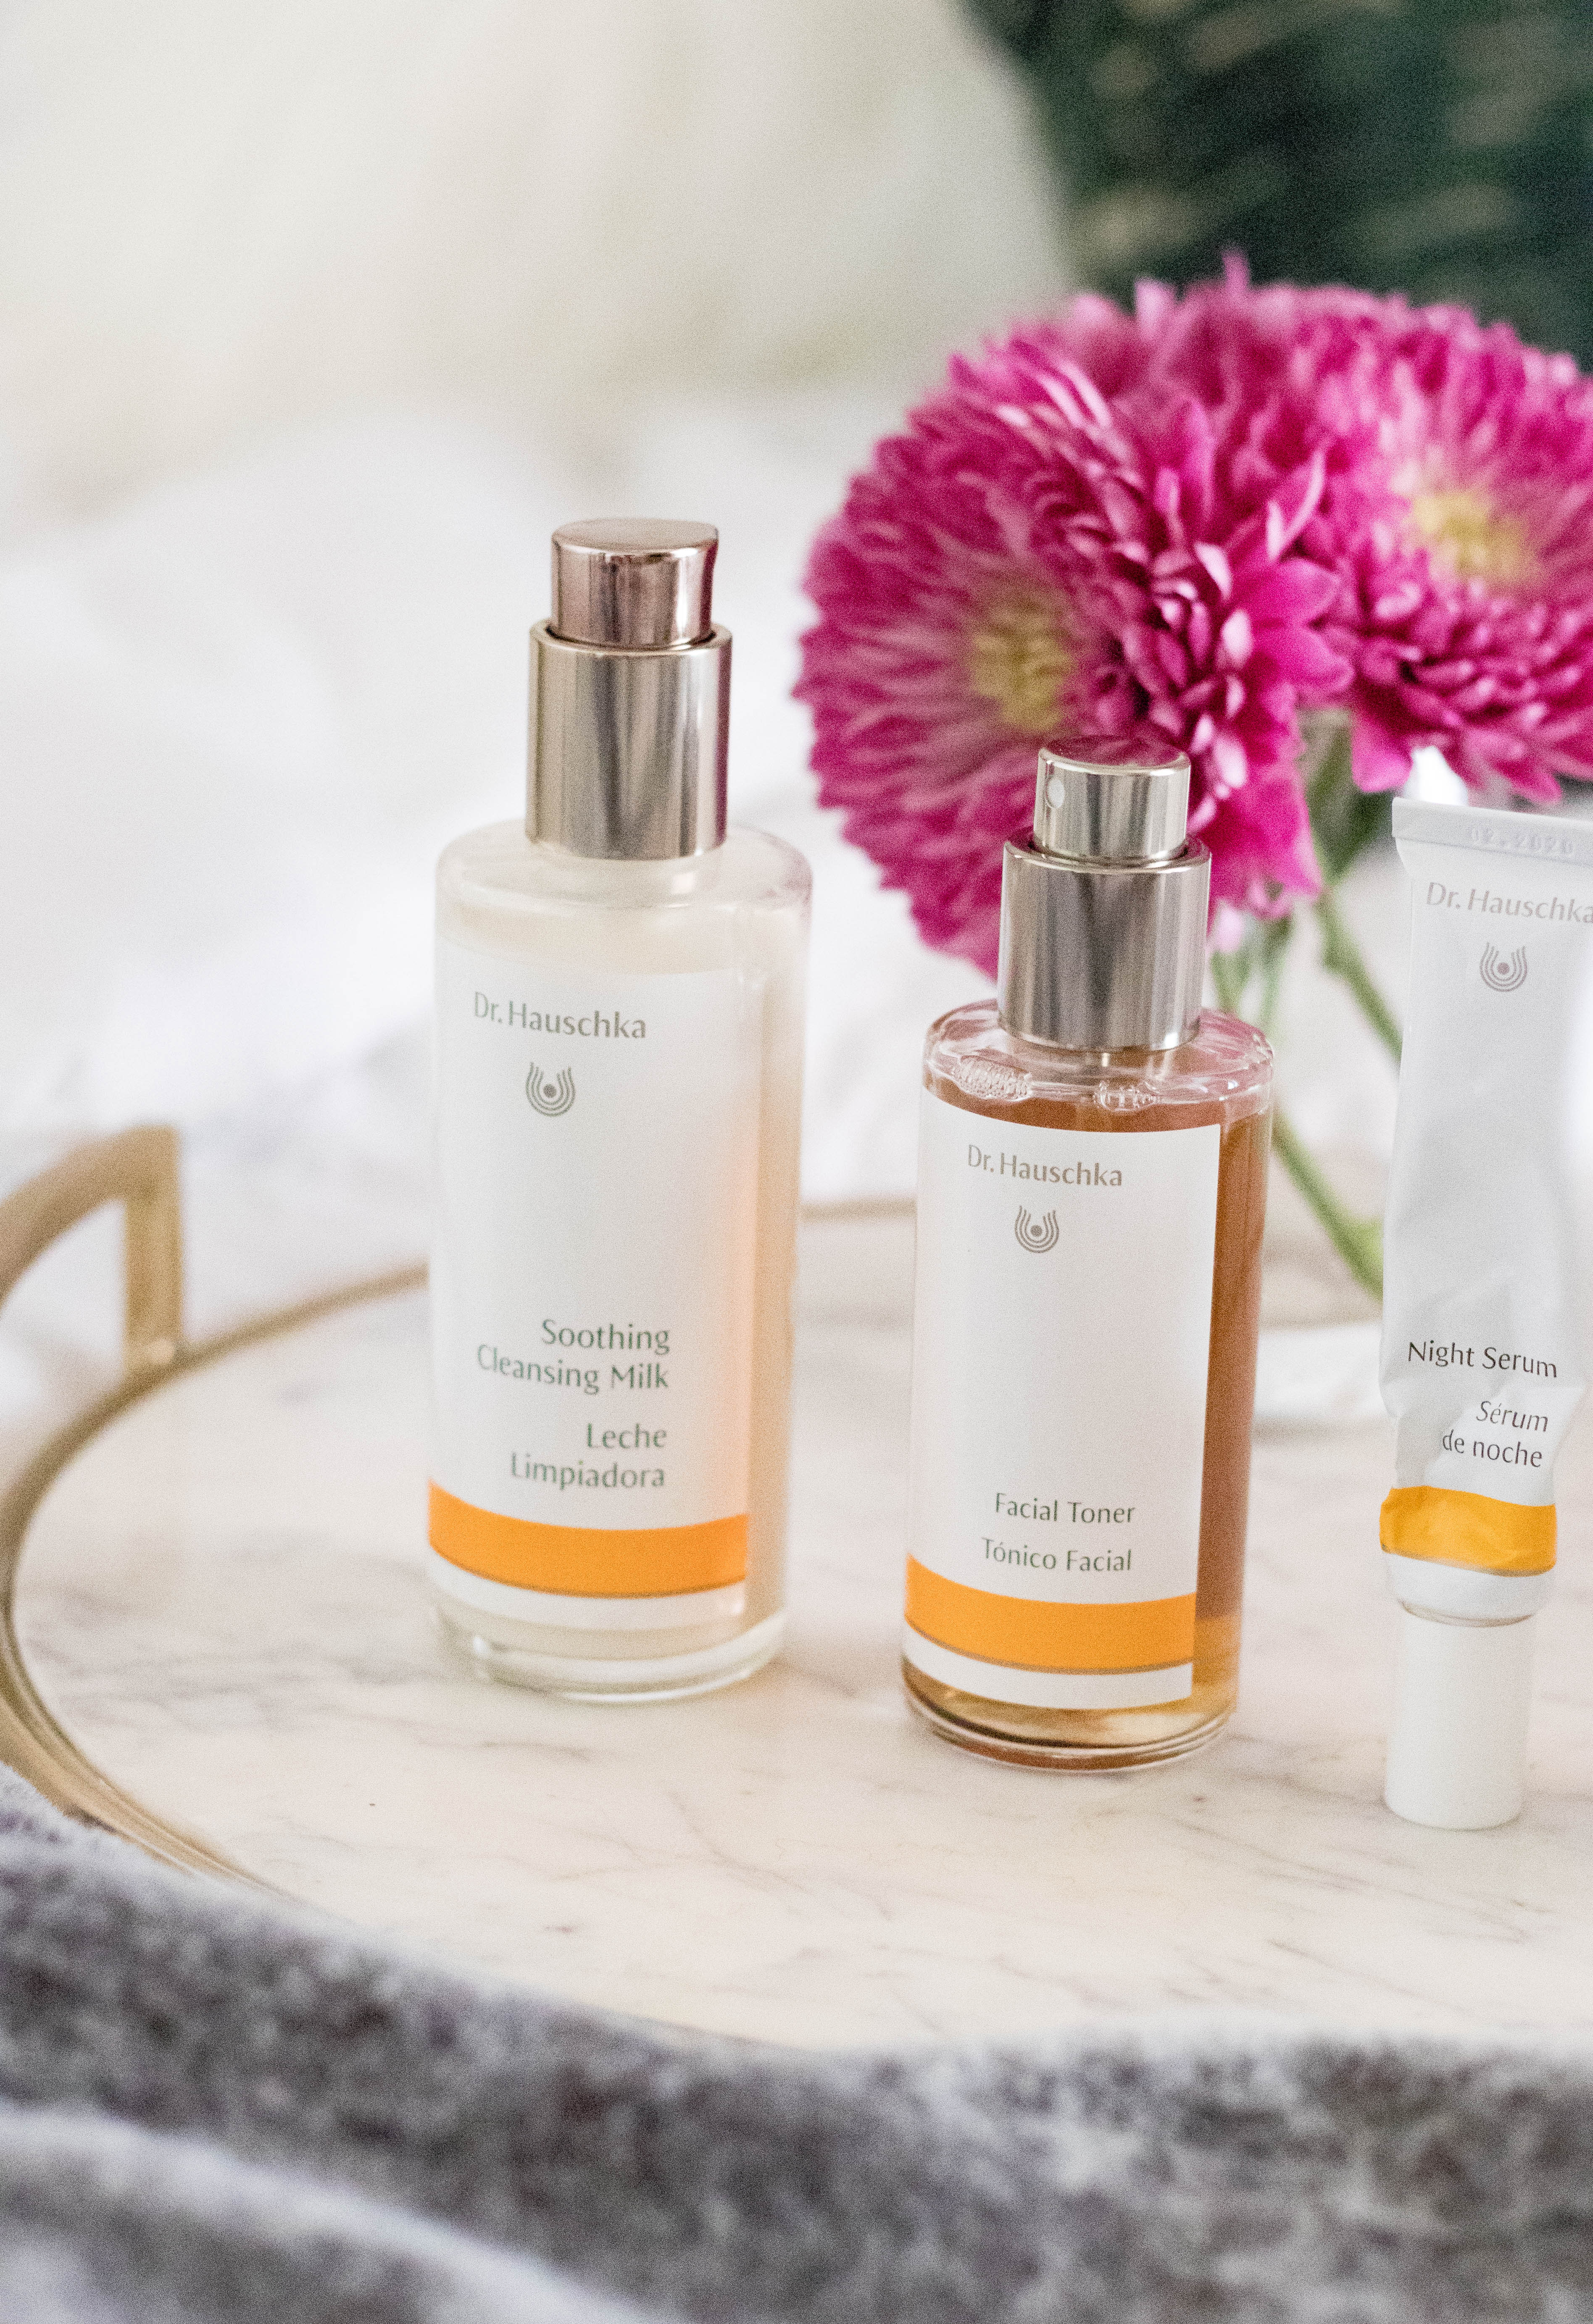 dr hauschka skincare routine #cleanbeauty #skincare #naturalskincare